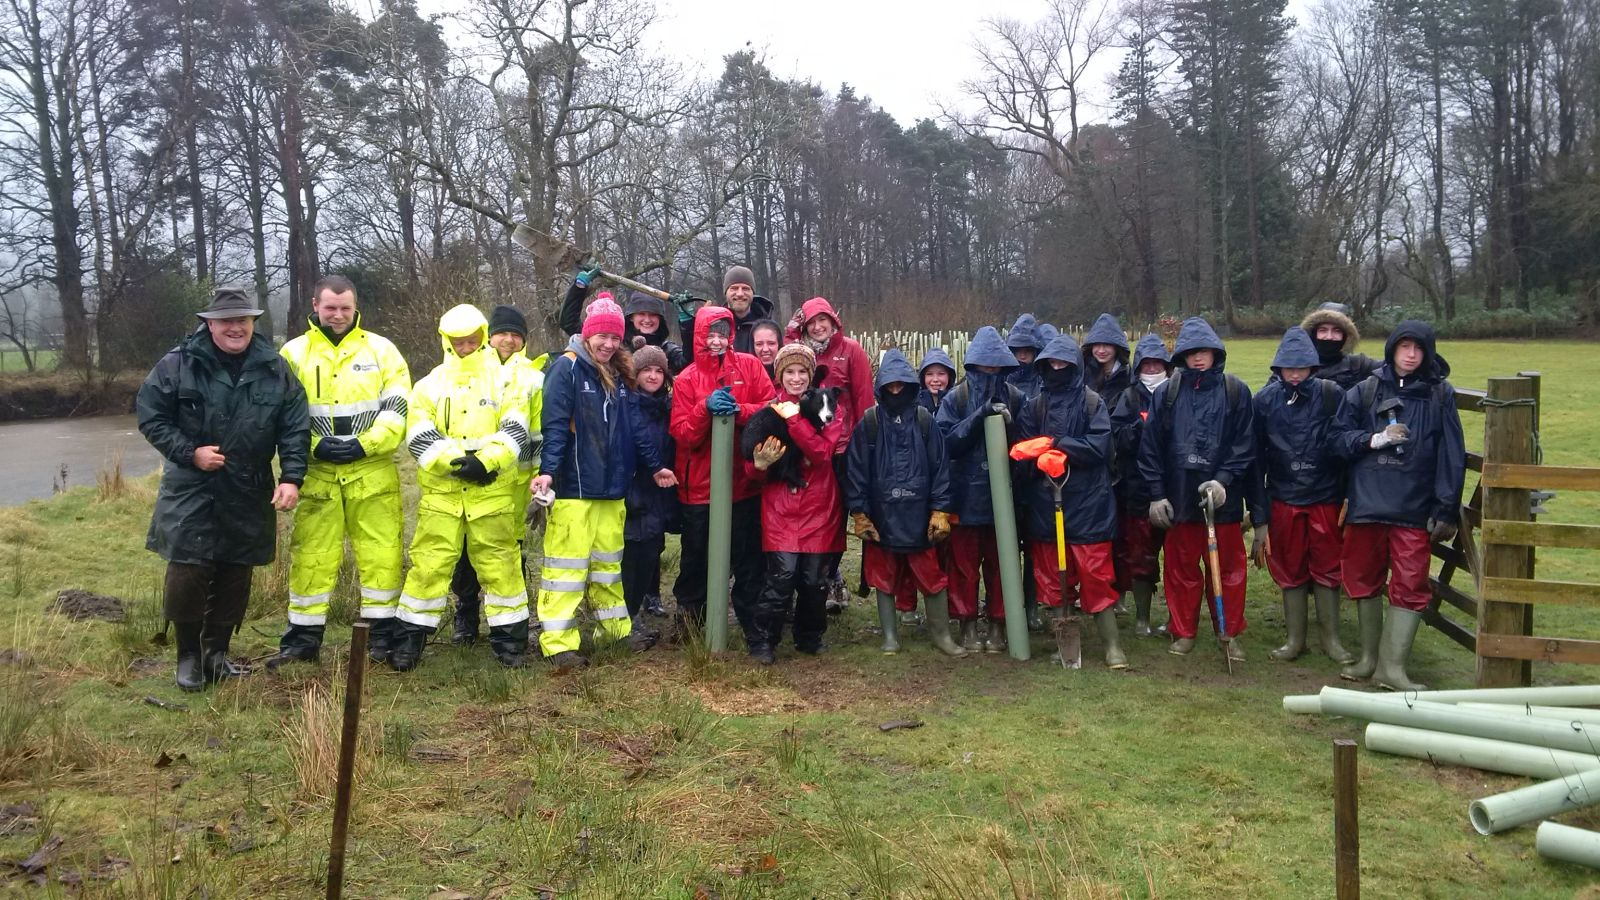 Photo: St. Mary's pupils help the Environmental Agency to plant trees on a windy day last week